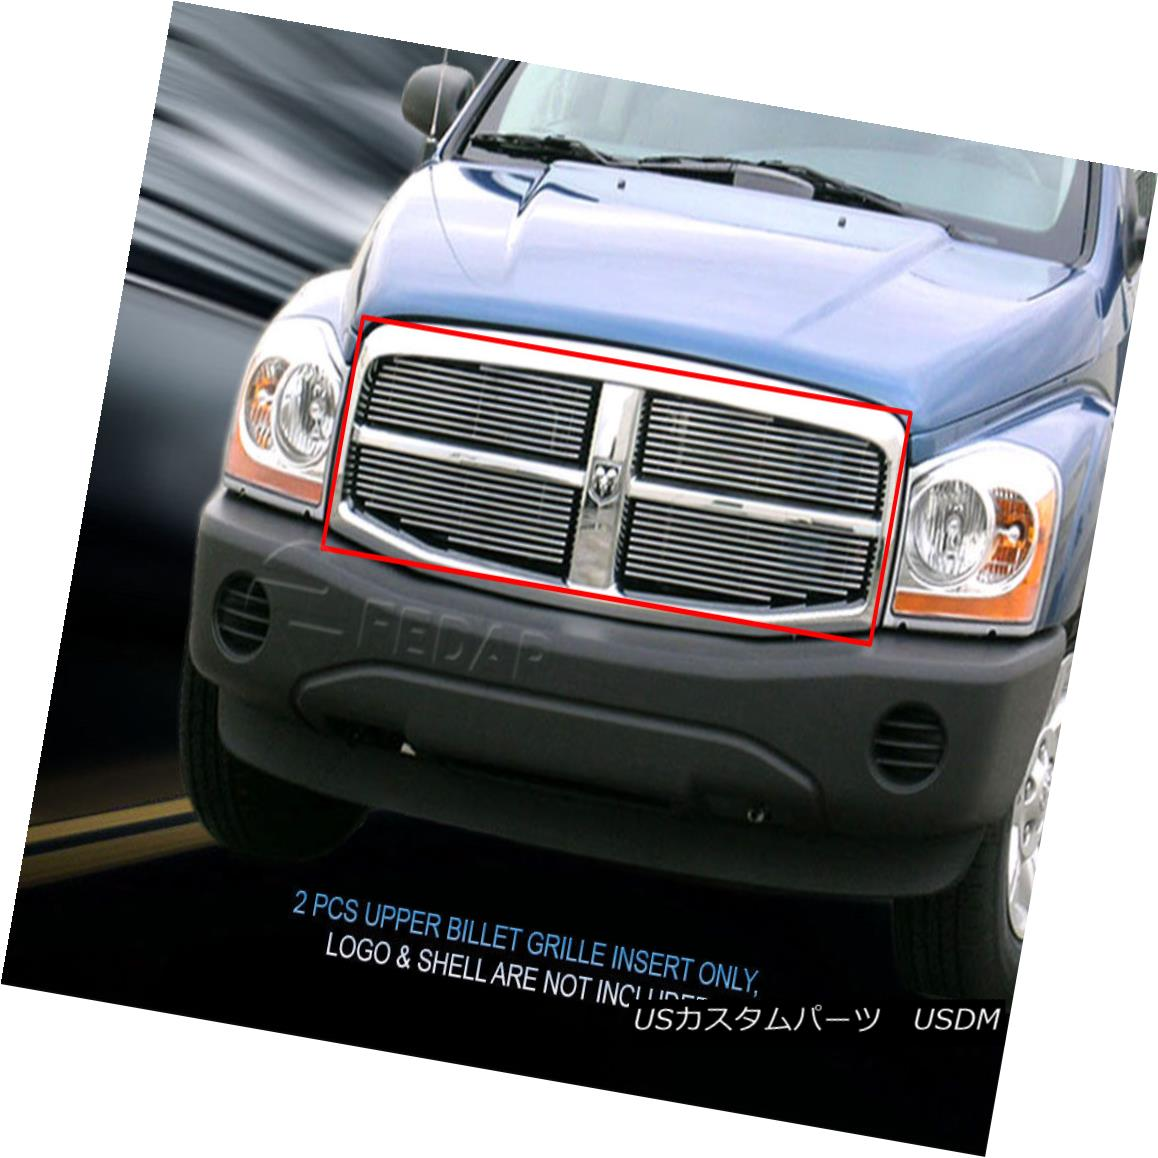 グリル For 2004-2006 Dodge Durango Billet Grille 4 Pieces Upper Grill Insert Fedar 2004-2006 Dodge Durango Billet Grille 4個アッパーグリルインサートFedar